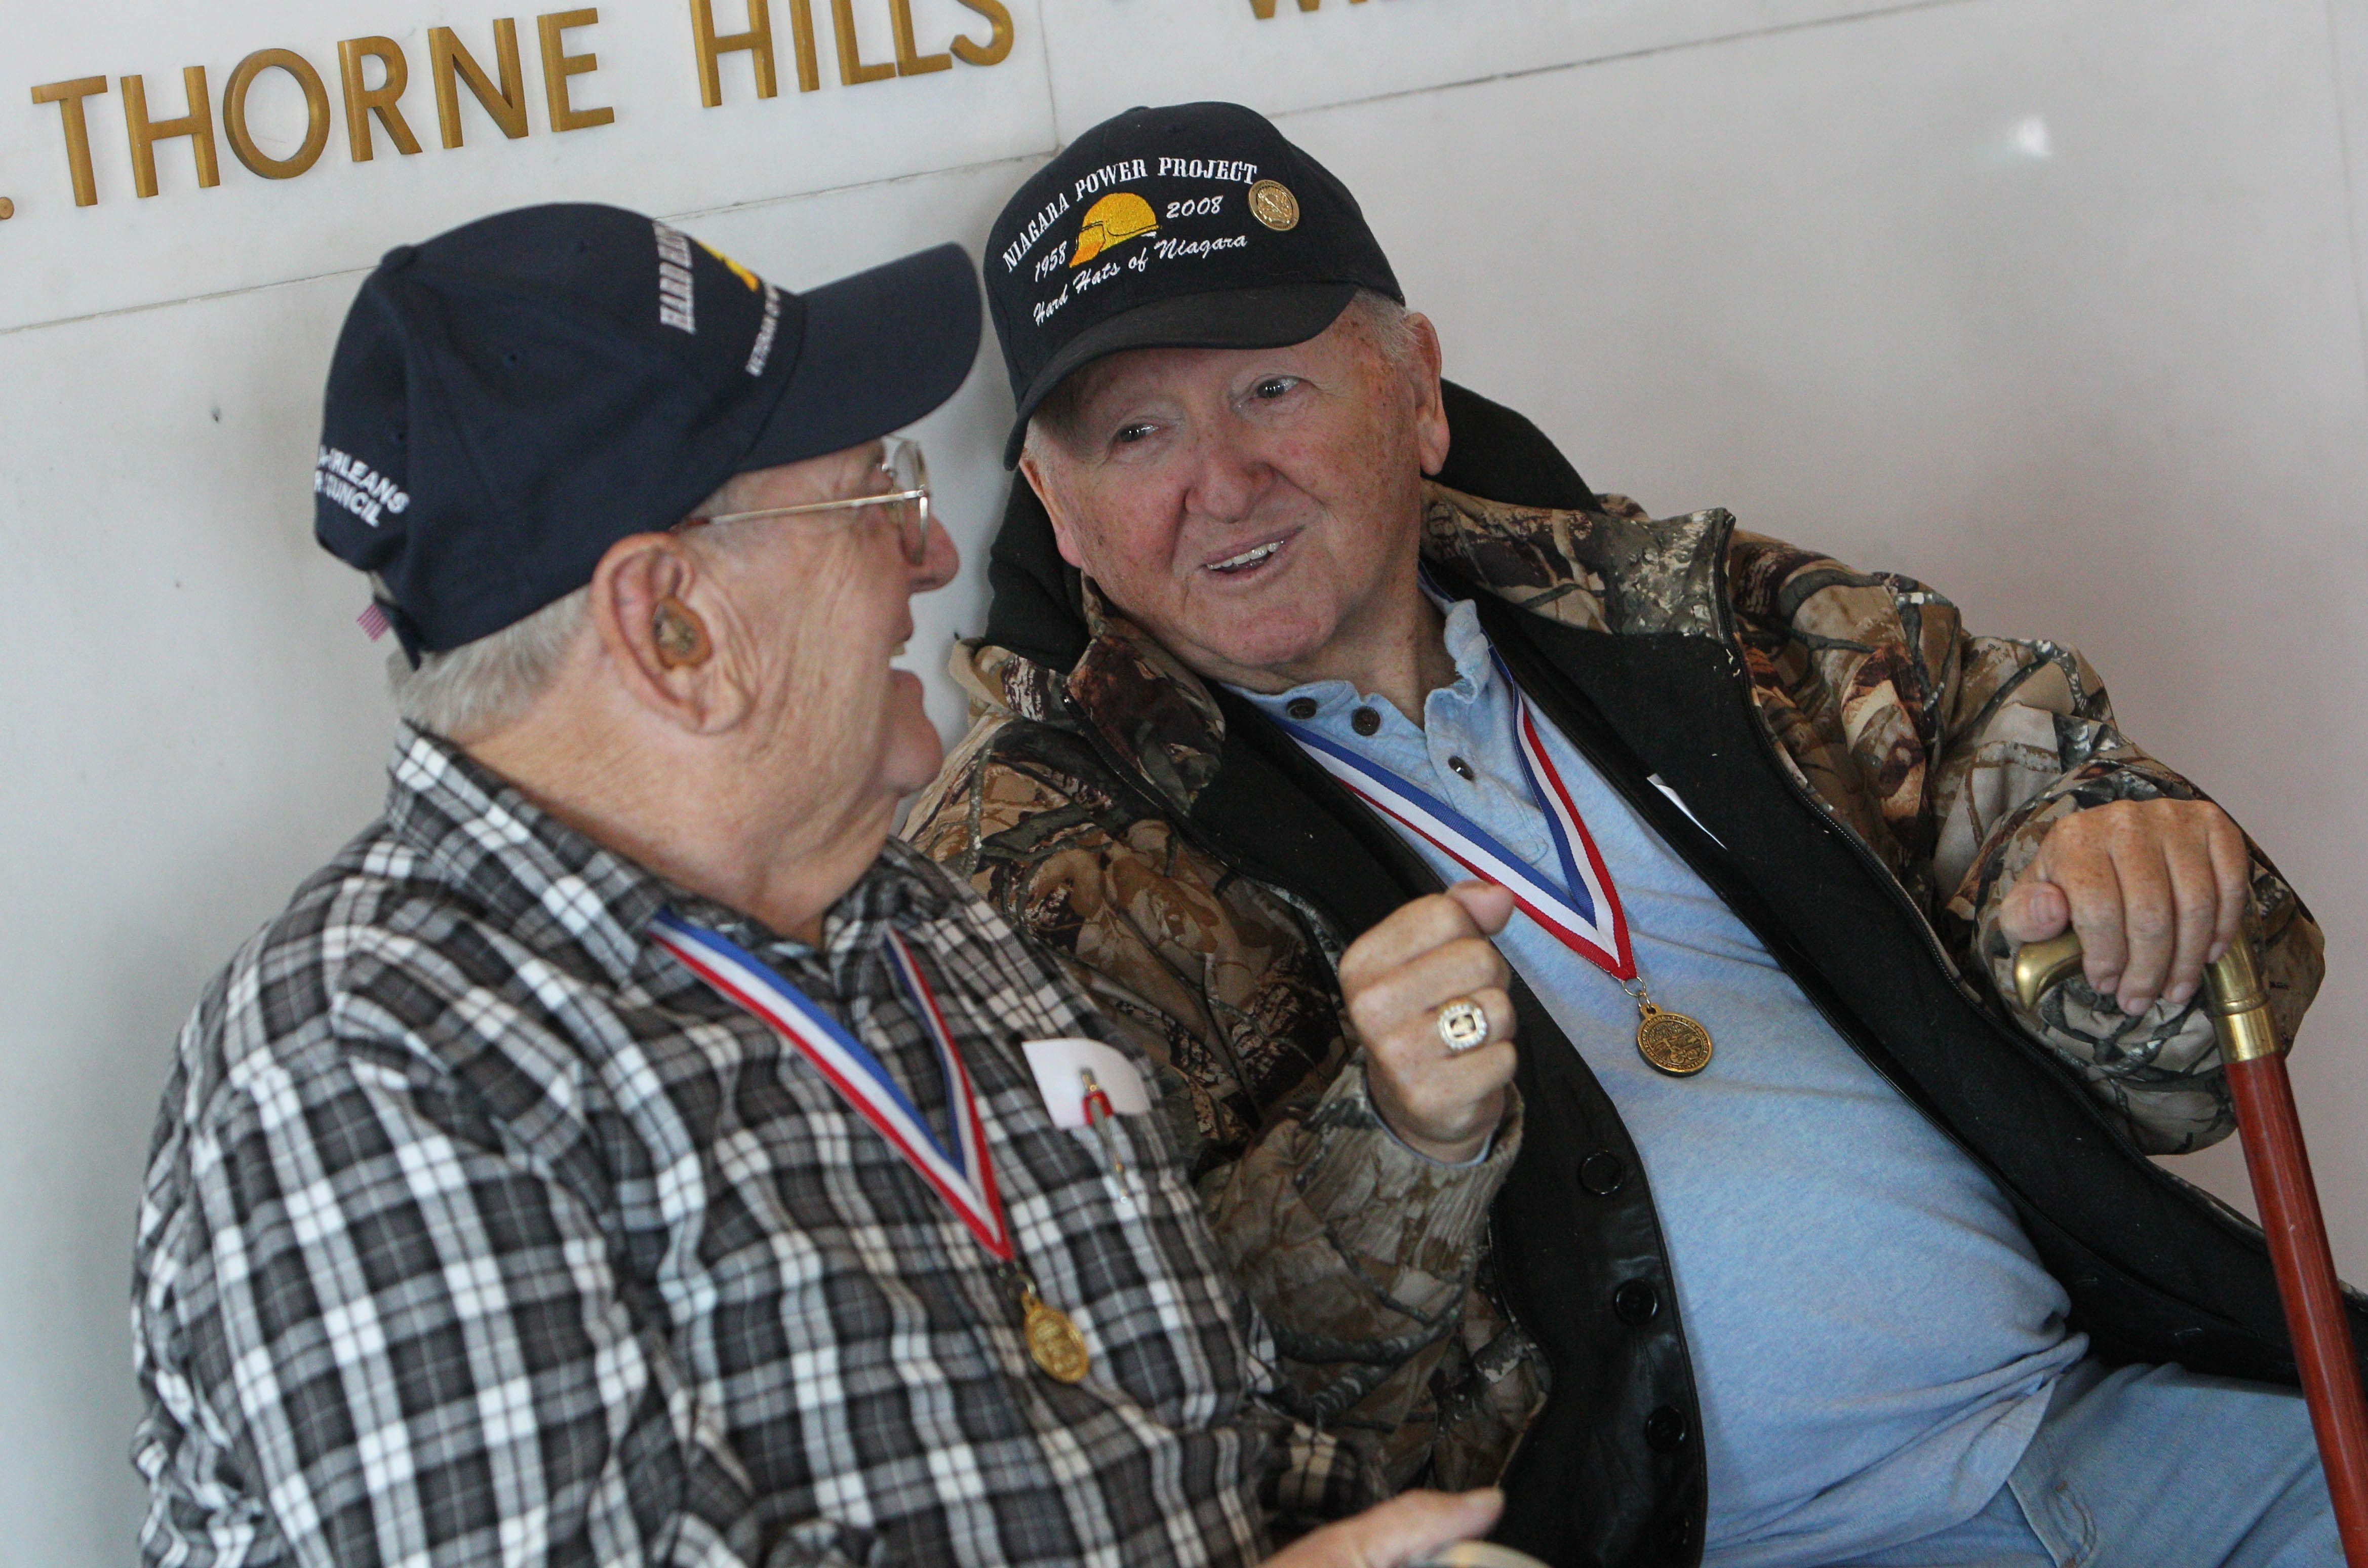 Bob Adner, 83, left, of Town of Tonawanda, and Gordon Botting, 74, of Lockport, members of the Hard Hats of Niagara, share stories of how they helped build Niagara Hydroelectric Power Station and the Power Vista in 1950s and early '60s.